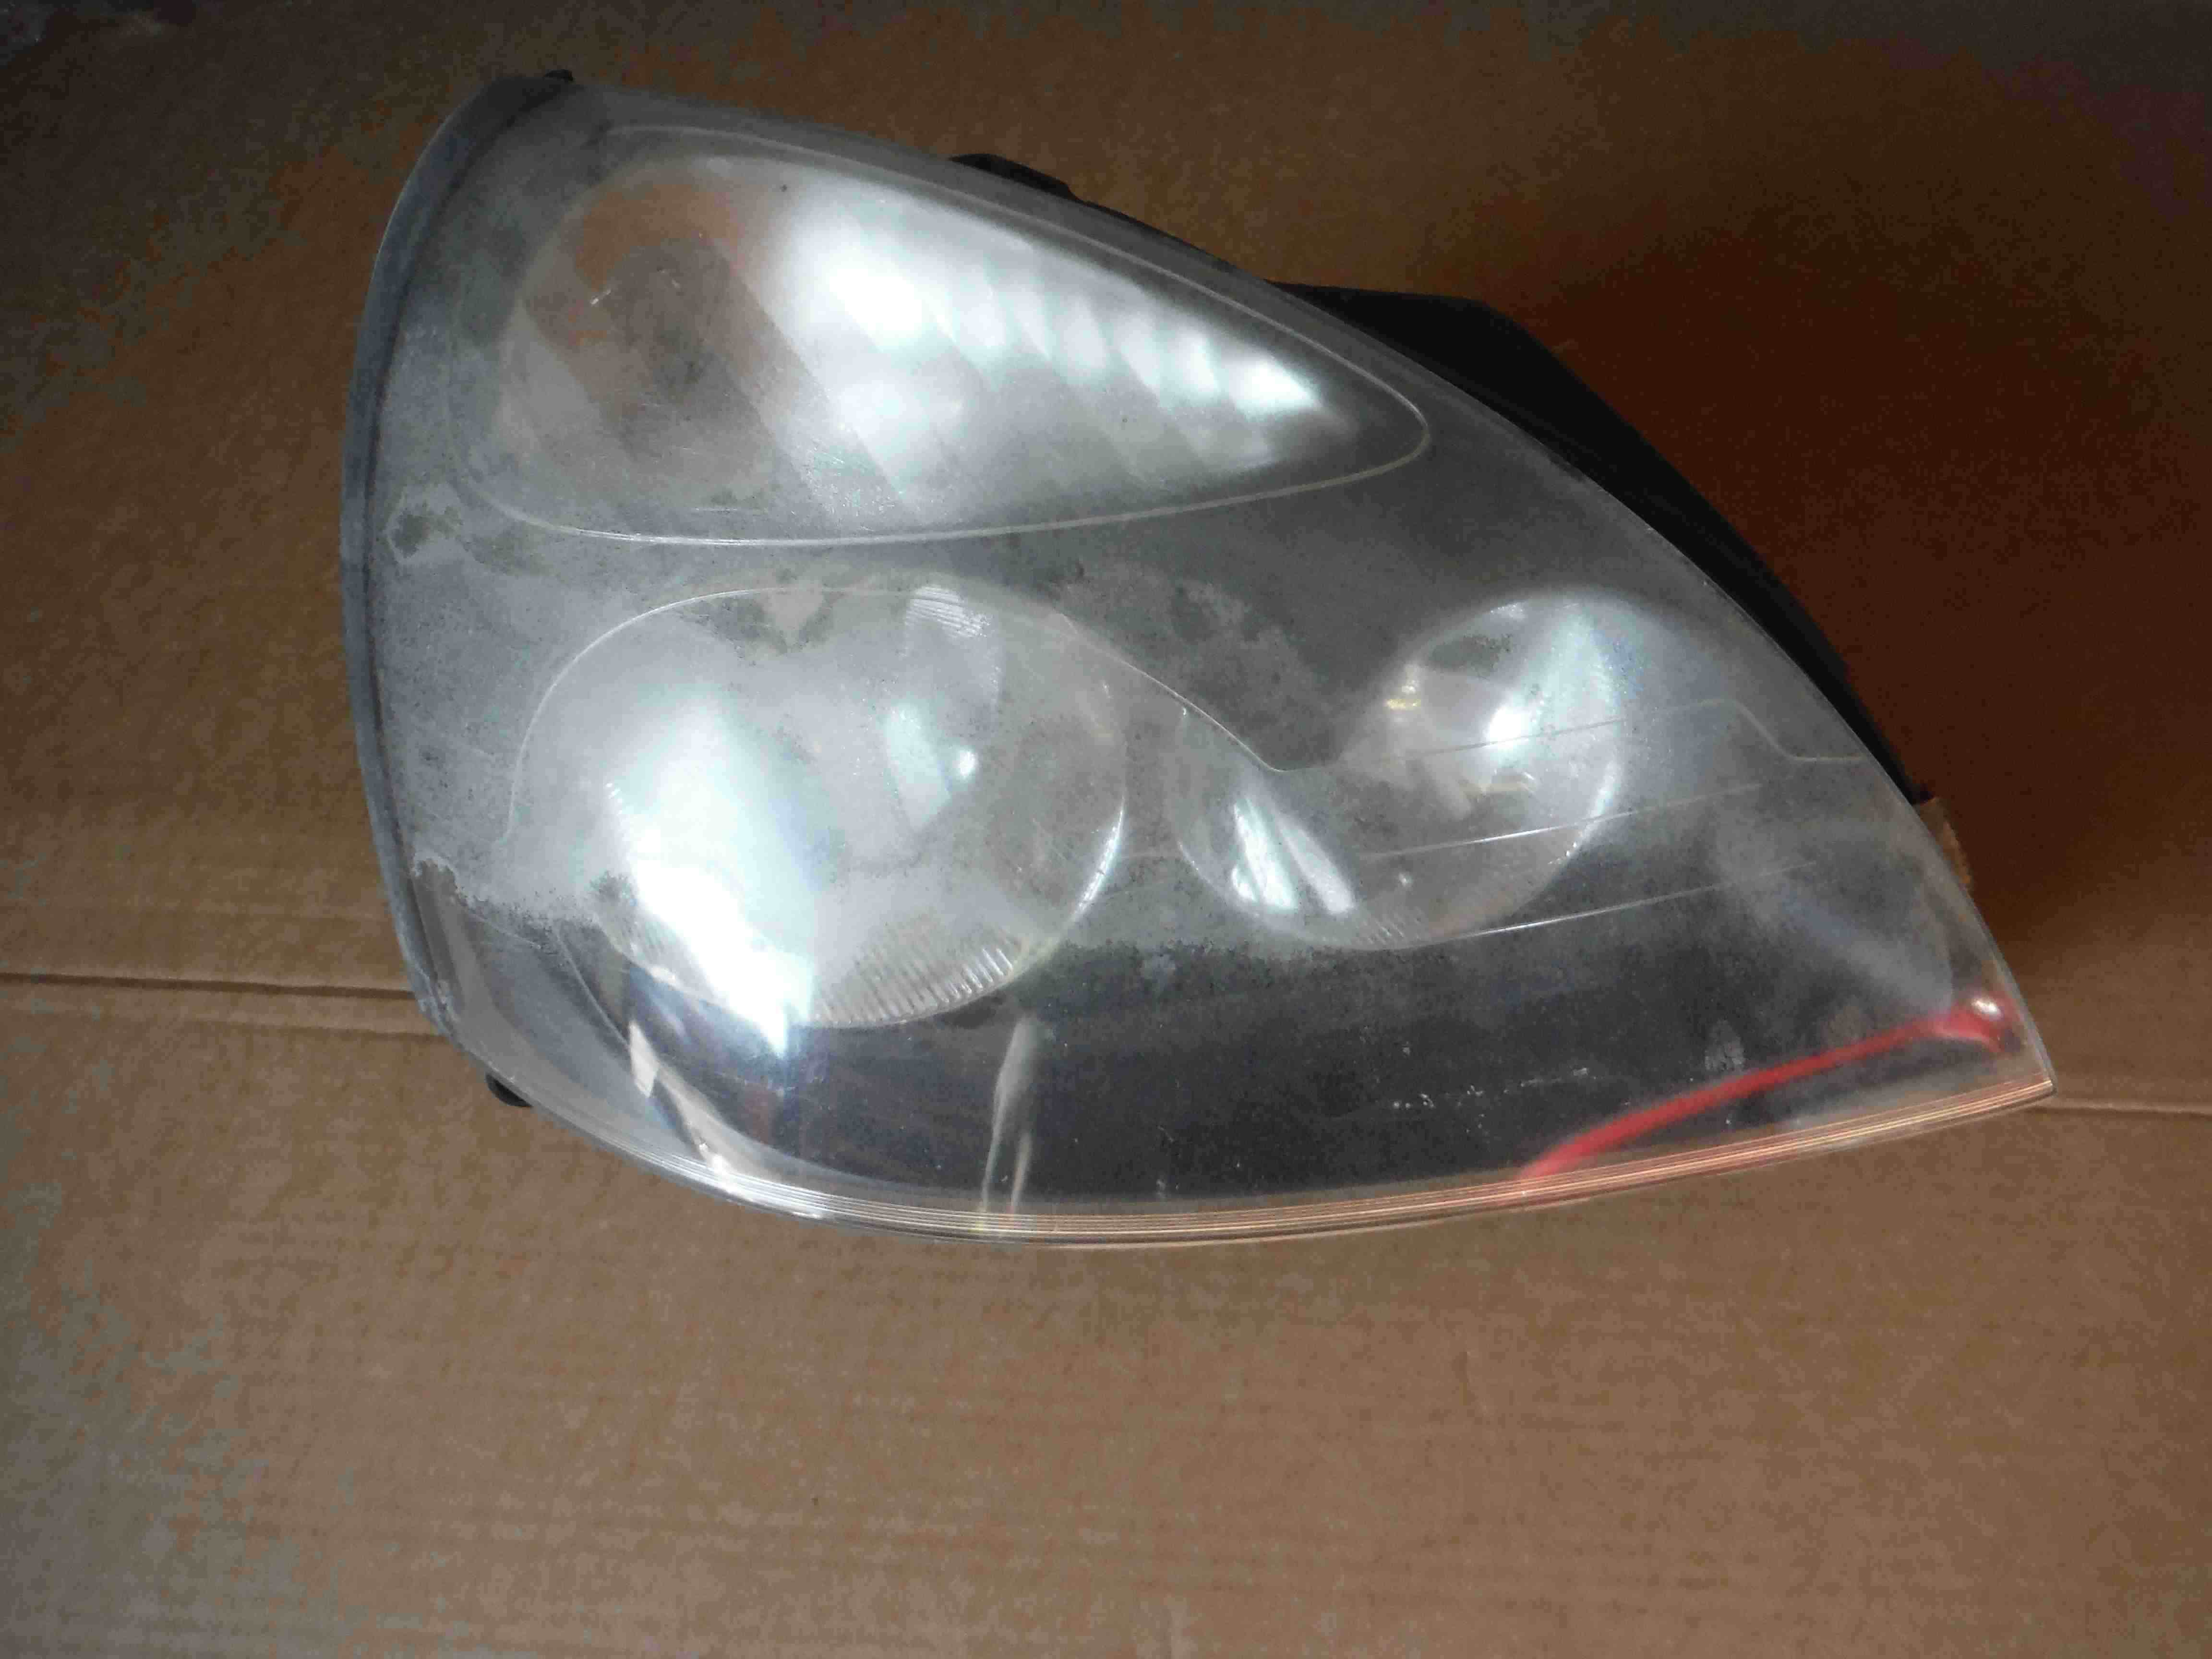 Renault Clio MK2 2001-2006 Drivers OSF Front Headlight Black Cloudy